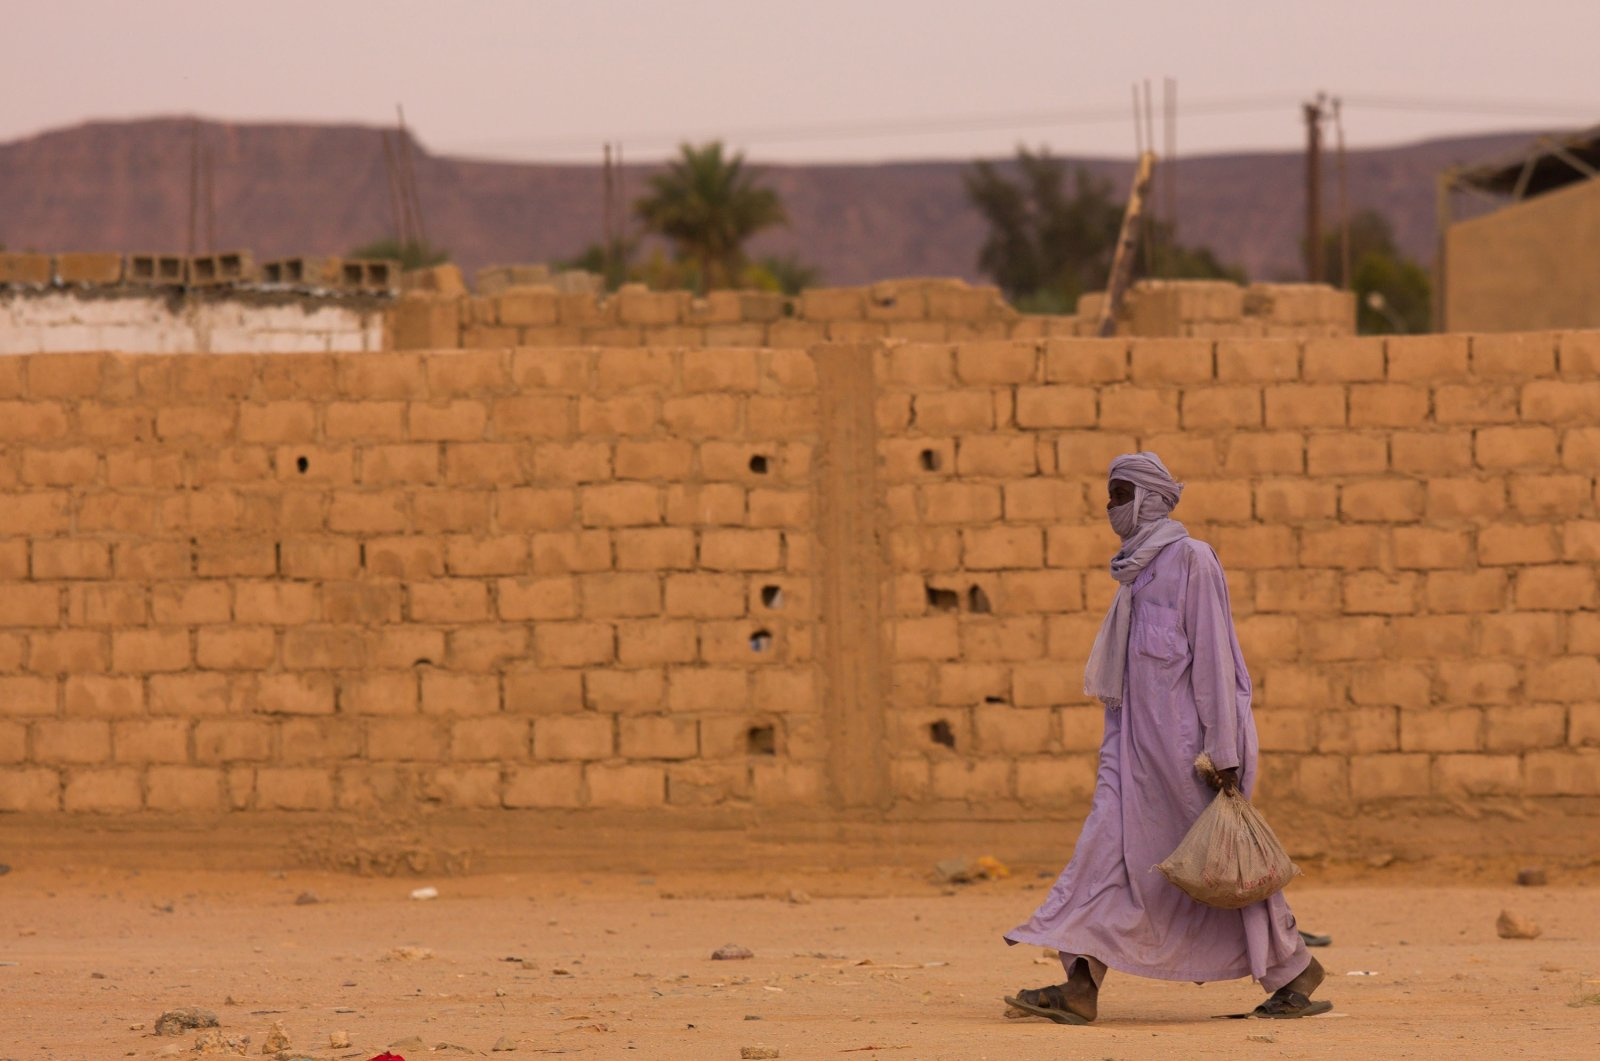 Tuareg man walking in the street, Tripolitania, Ghadames, Libya on Oct. 31, 2007. (Getty Images)